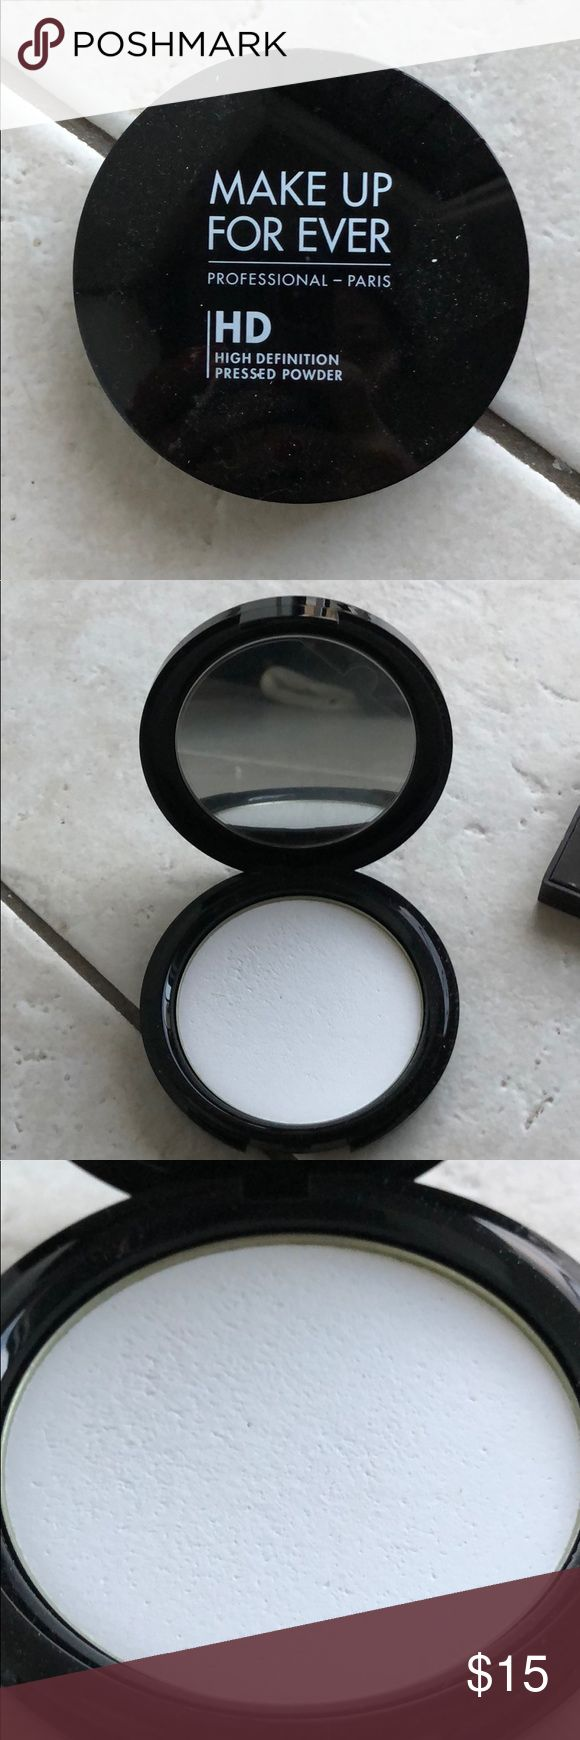 make up forever high definition pressed powder hardly used whatsoever Makeup Foundation